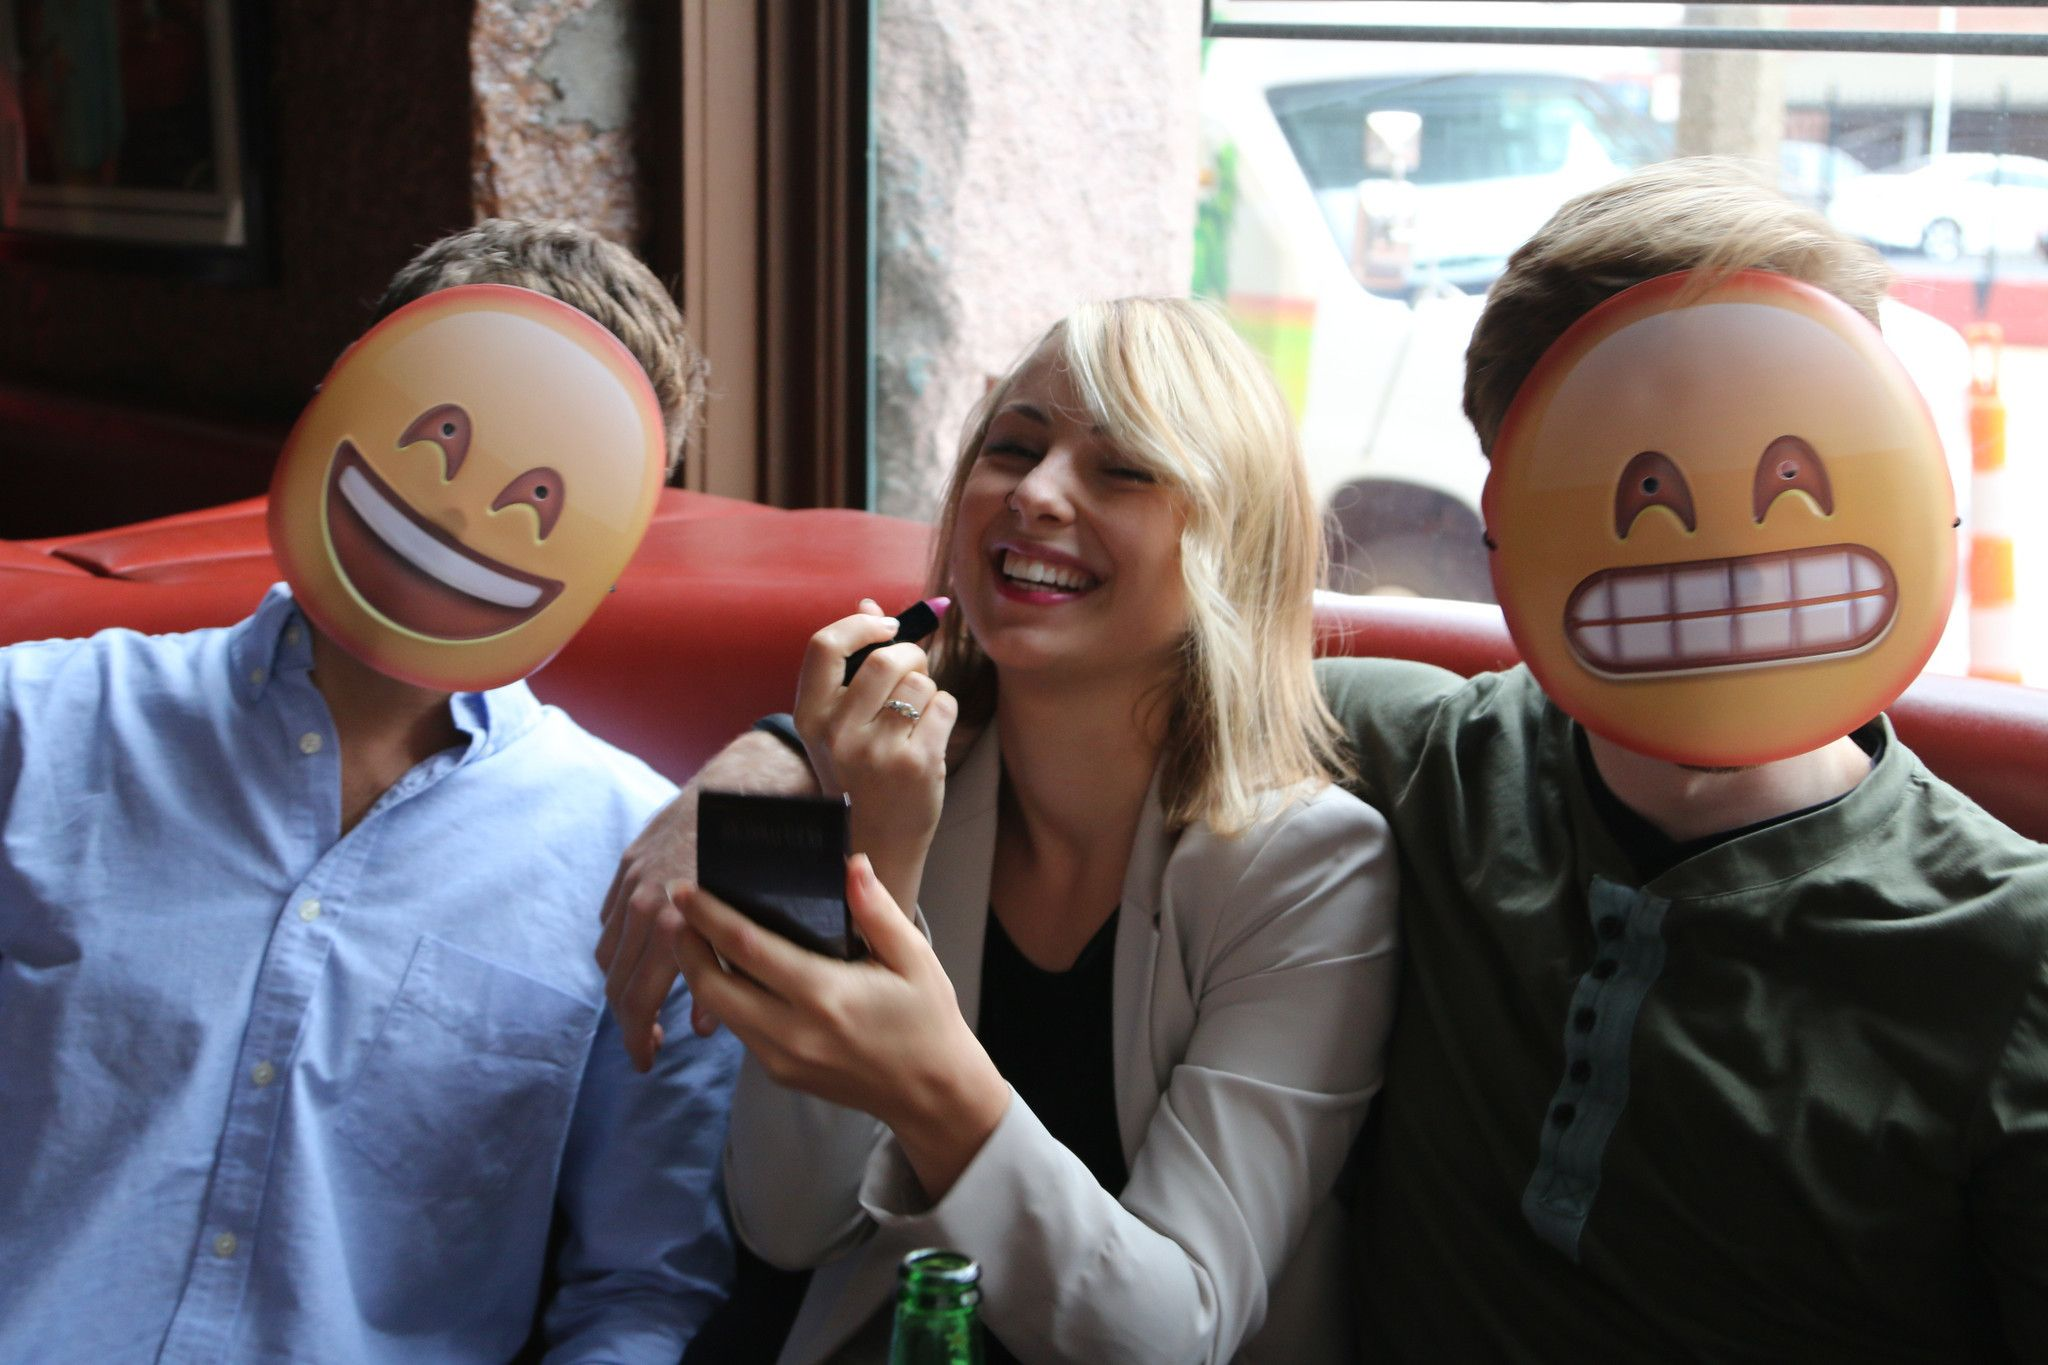 these emoji masks are the best halloween costumes 5 can buy - Cheap Creepy Halloween Costumes